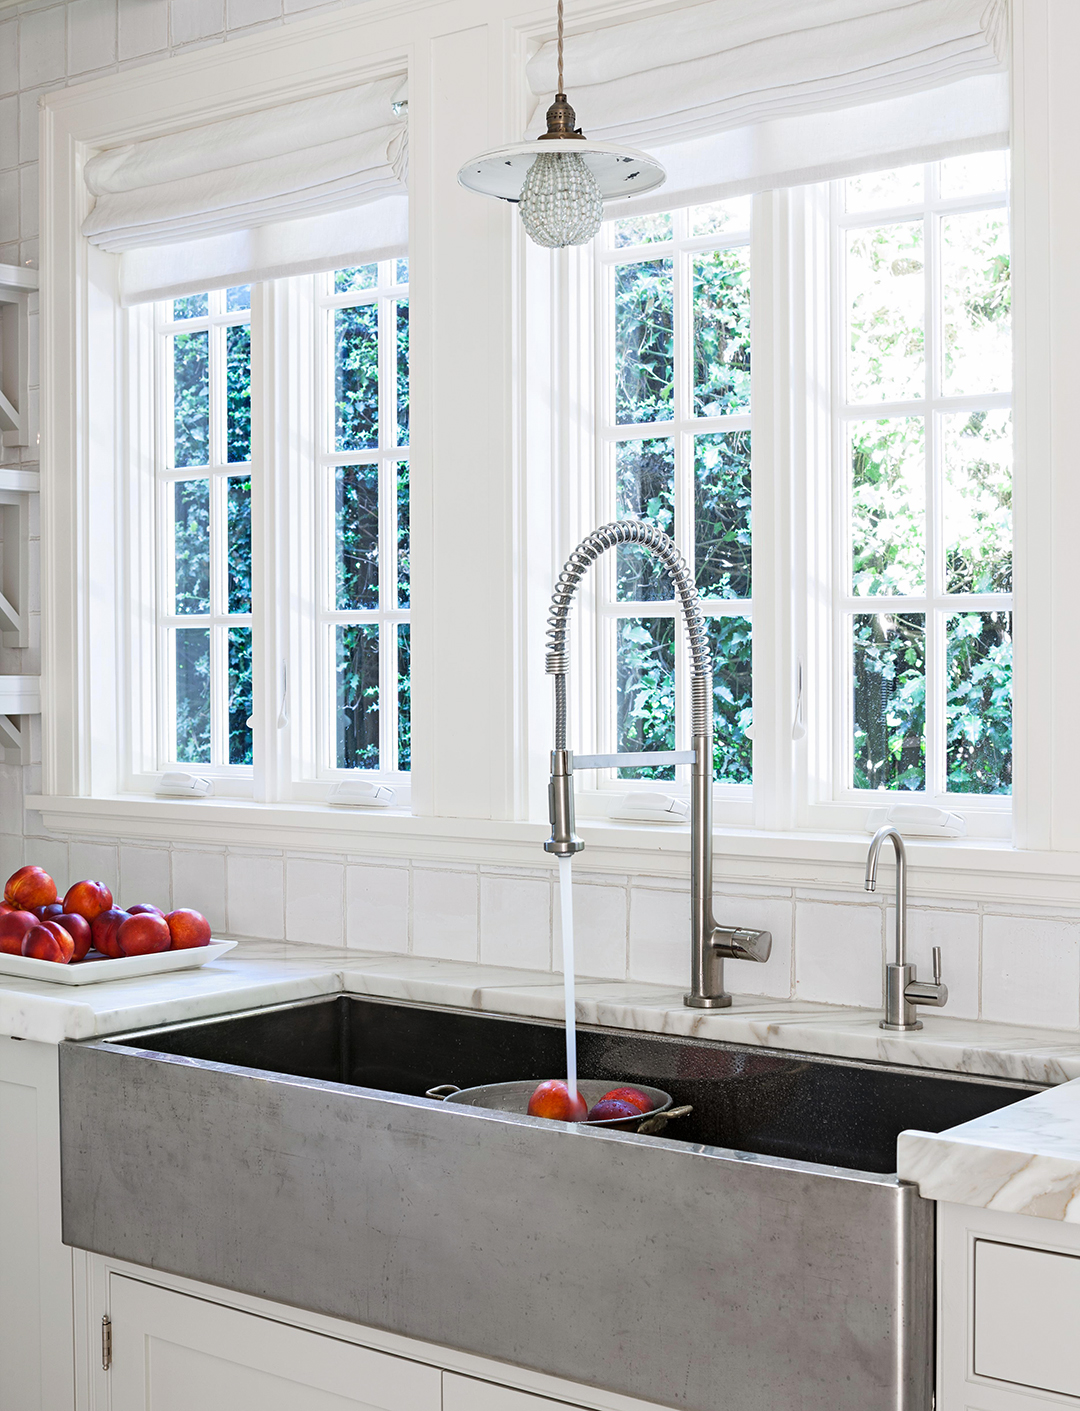 kitchen with large open sink and faucet by windows